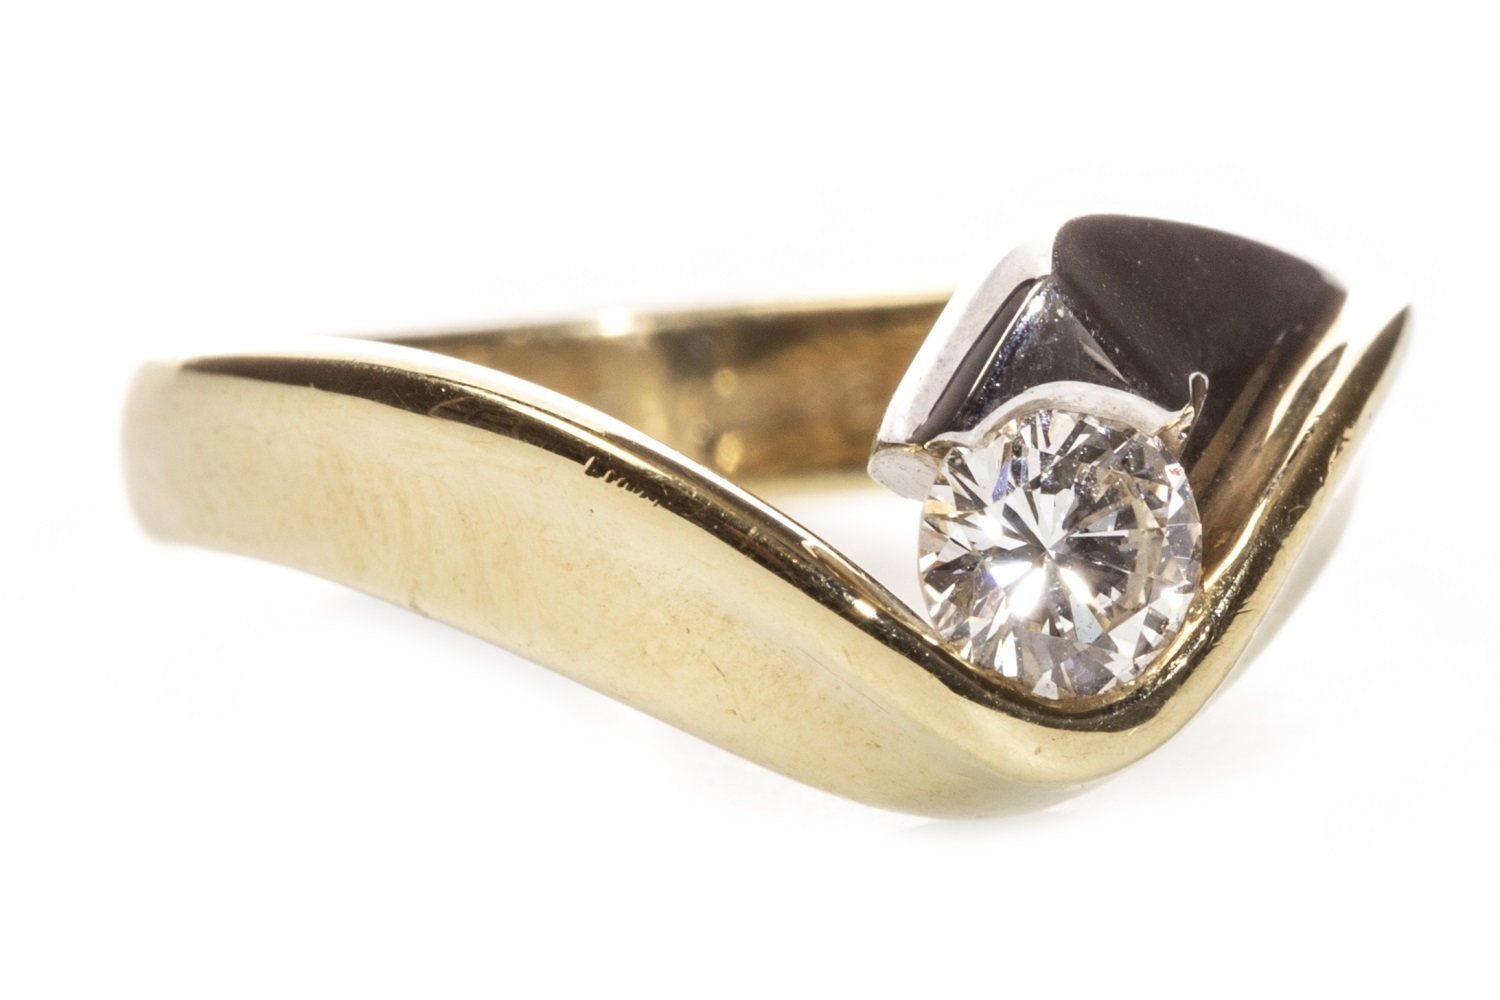 Lot 60 - A DIAMOND SOLITAIRE RING